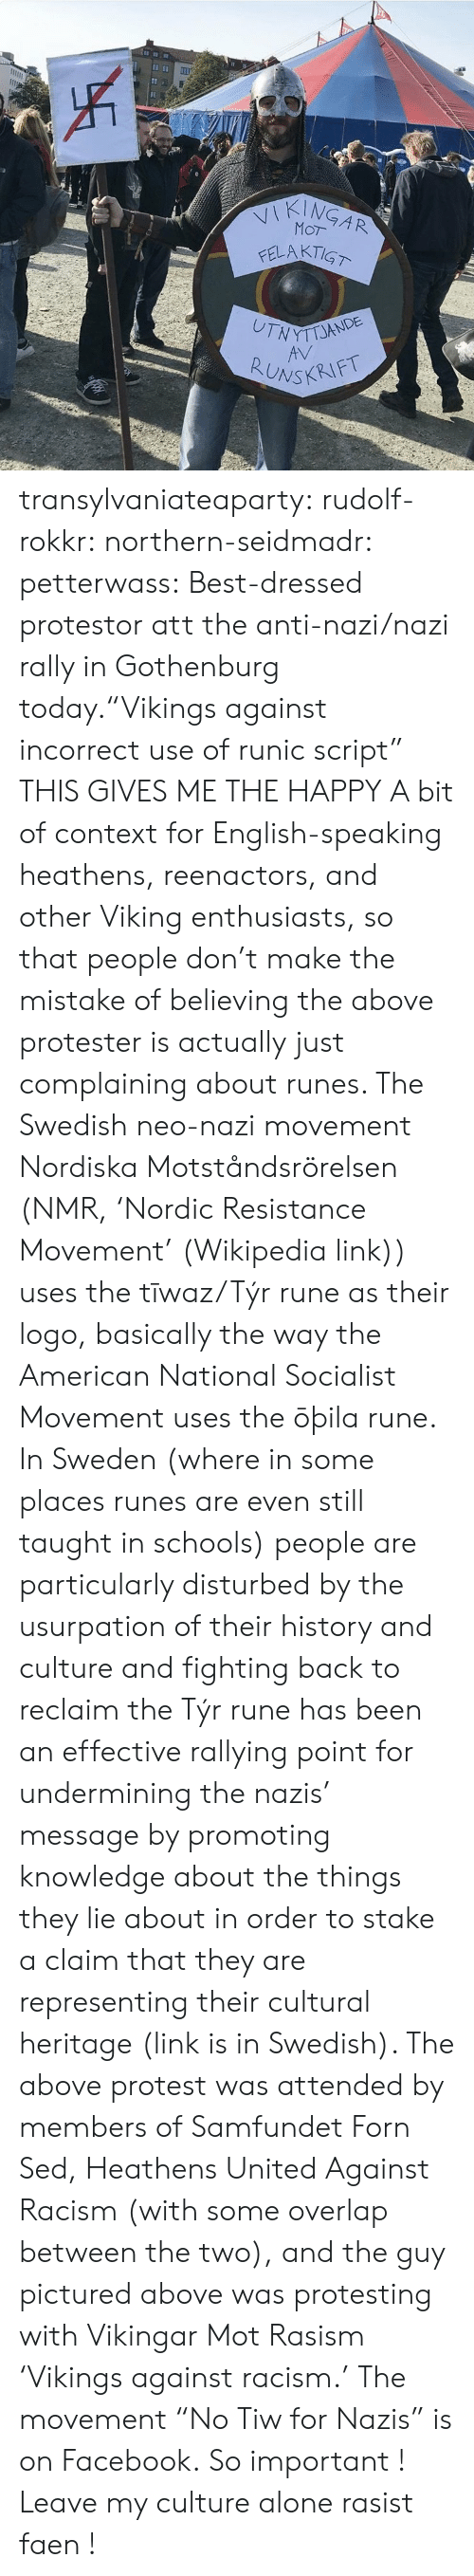 """Protester: JE  INGAR  WYTTJANDE  ONSKRIFT transylvaniateaparty: rudolf-rokkr:  northern-seidmadr:  petterwass: Best-dressed protestor att the anti-nazi/nazi rally in Gothenburg today.""""Vikings against incorrect use of runic script""""  THIS GIVES ME THE HAPPY  A bit of context for English-speaking heathens, reenactors, and other Viking enthusiasts, so that people don't make the mistake of believing the above protester is actually just complaining about runes. The Swedish neo-nazi movement Nordiska Motståndsrörelsen (NMR, 'Nordic Resistance Movement' (Wikipedia link)) uses the tīwaz/Týr rune as their logo, basically the way the American National Socialist Movement uses the ōþila rune. In Sweden (where in some places runes are even still taught in schools) people are particularly disturbed by the usurpation of their history and culture and fighting back to reclaim the Týr rune has been an effective rallying point for undermining the nazis' message by promoting knowledge about the things they lie about in order to stake a claim that they are representing their cultural heritage (link is in Swedish). The above protest was attended by members of Samfundet Forn Sed, Heathens United Against Racism (with some overlap between the two), and the guy pictured above was protesting with Vikingar Mot Rasism 'Vikings against racism.' The movement """"No Tiw for Nazis"""" is on Facebook.   So important ! Leave my culture alone rasist faen !"""